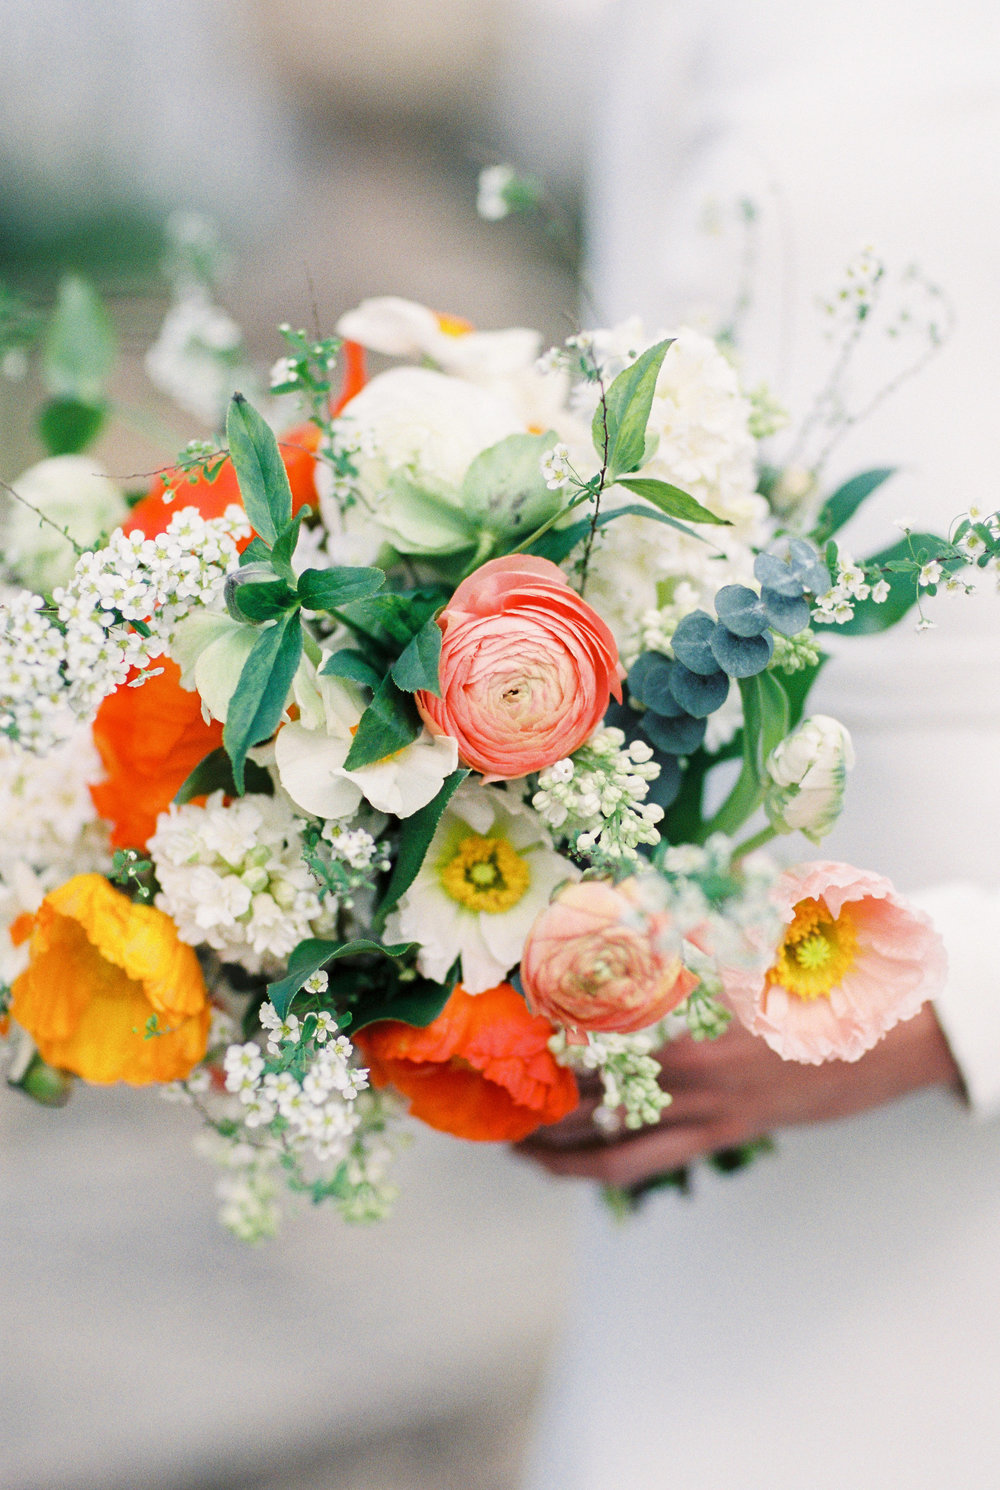 Flowers by Bramble and Wild | Bowtie and Belle Photography | Styled by Kate Cullen for the Fine Art Wedding Boutique